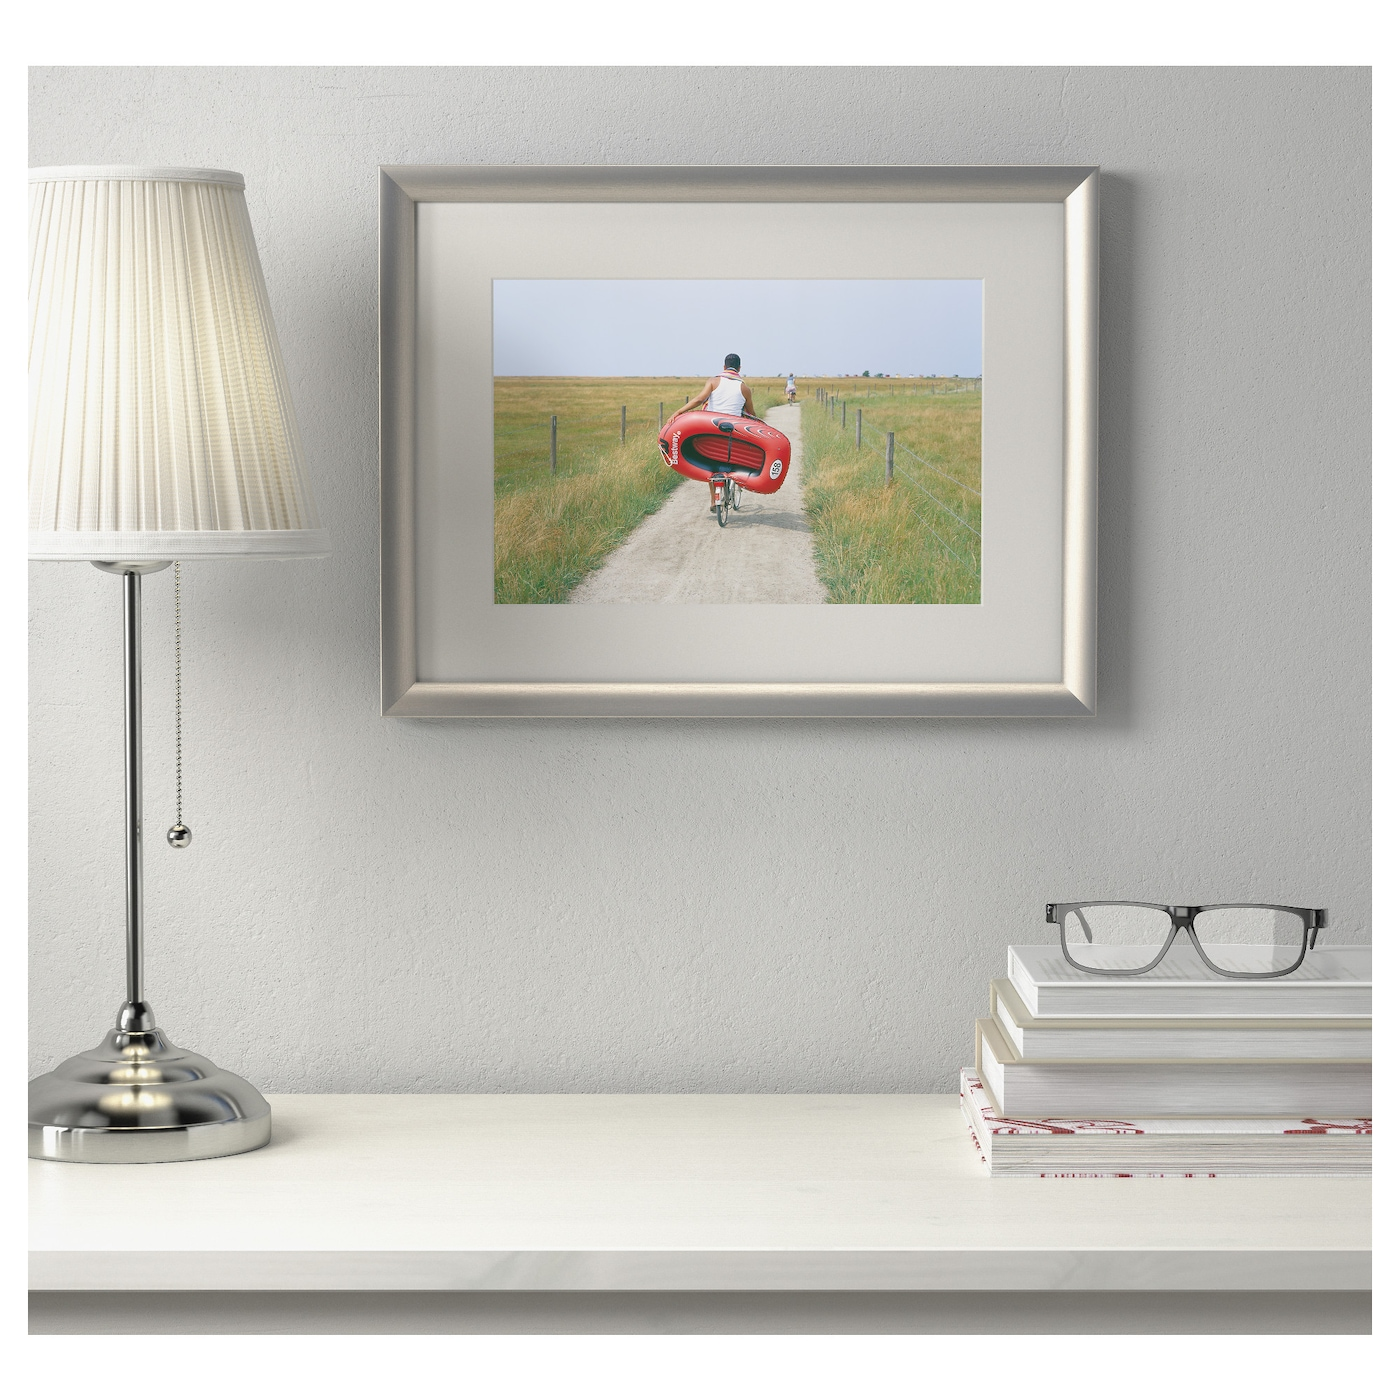 IKEA SILVERHÖJDEN frame Can be hung horizontally or vertically to fit in the space available.